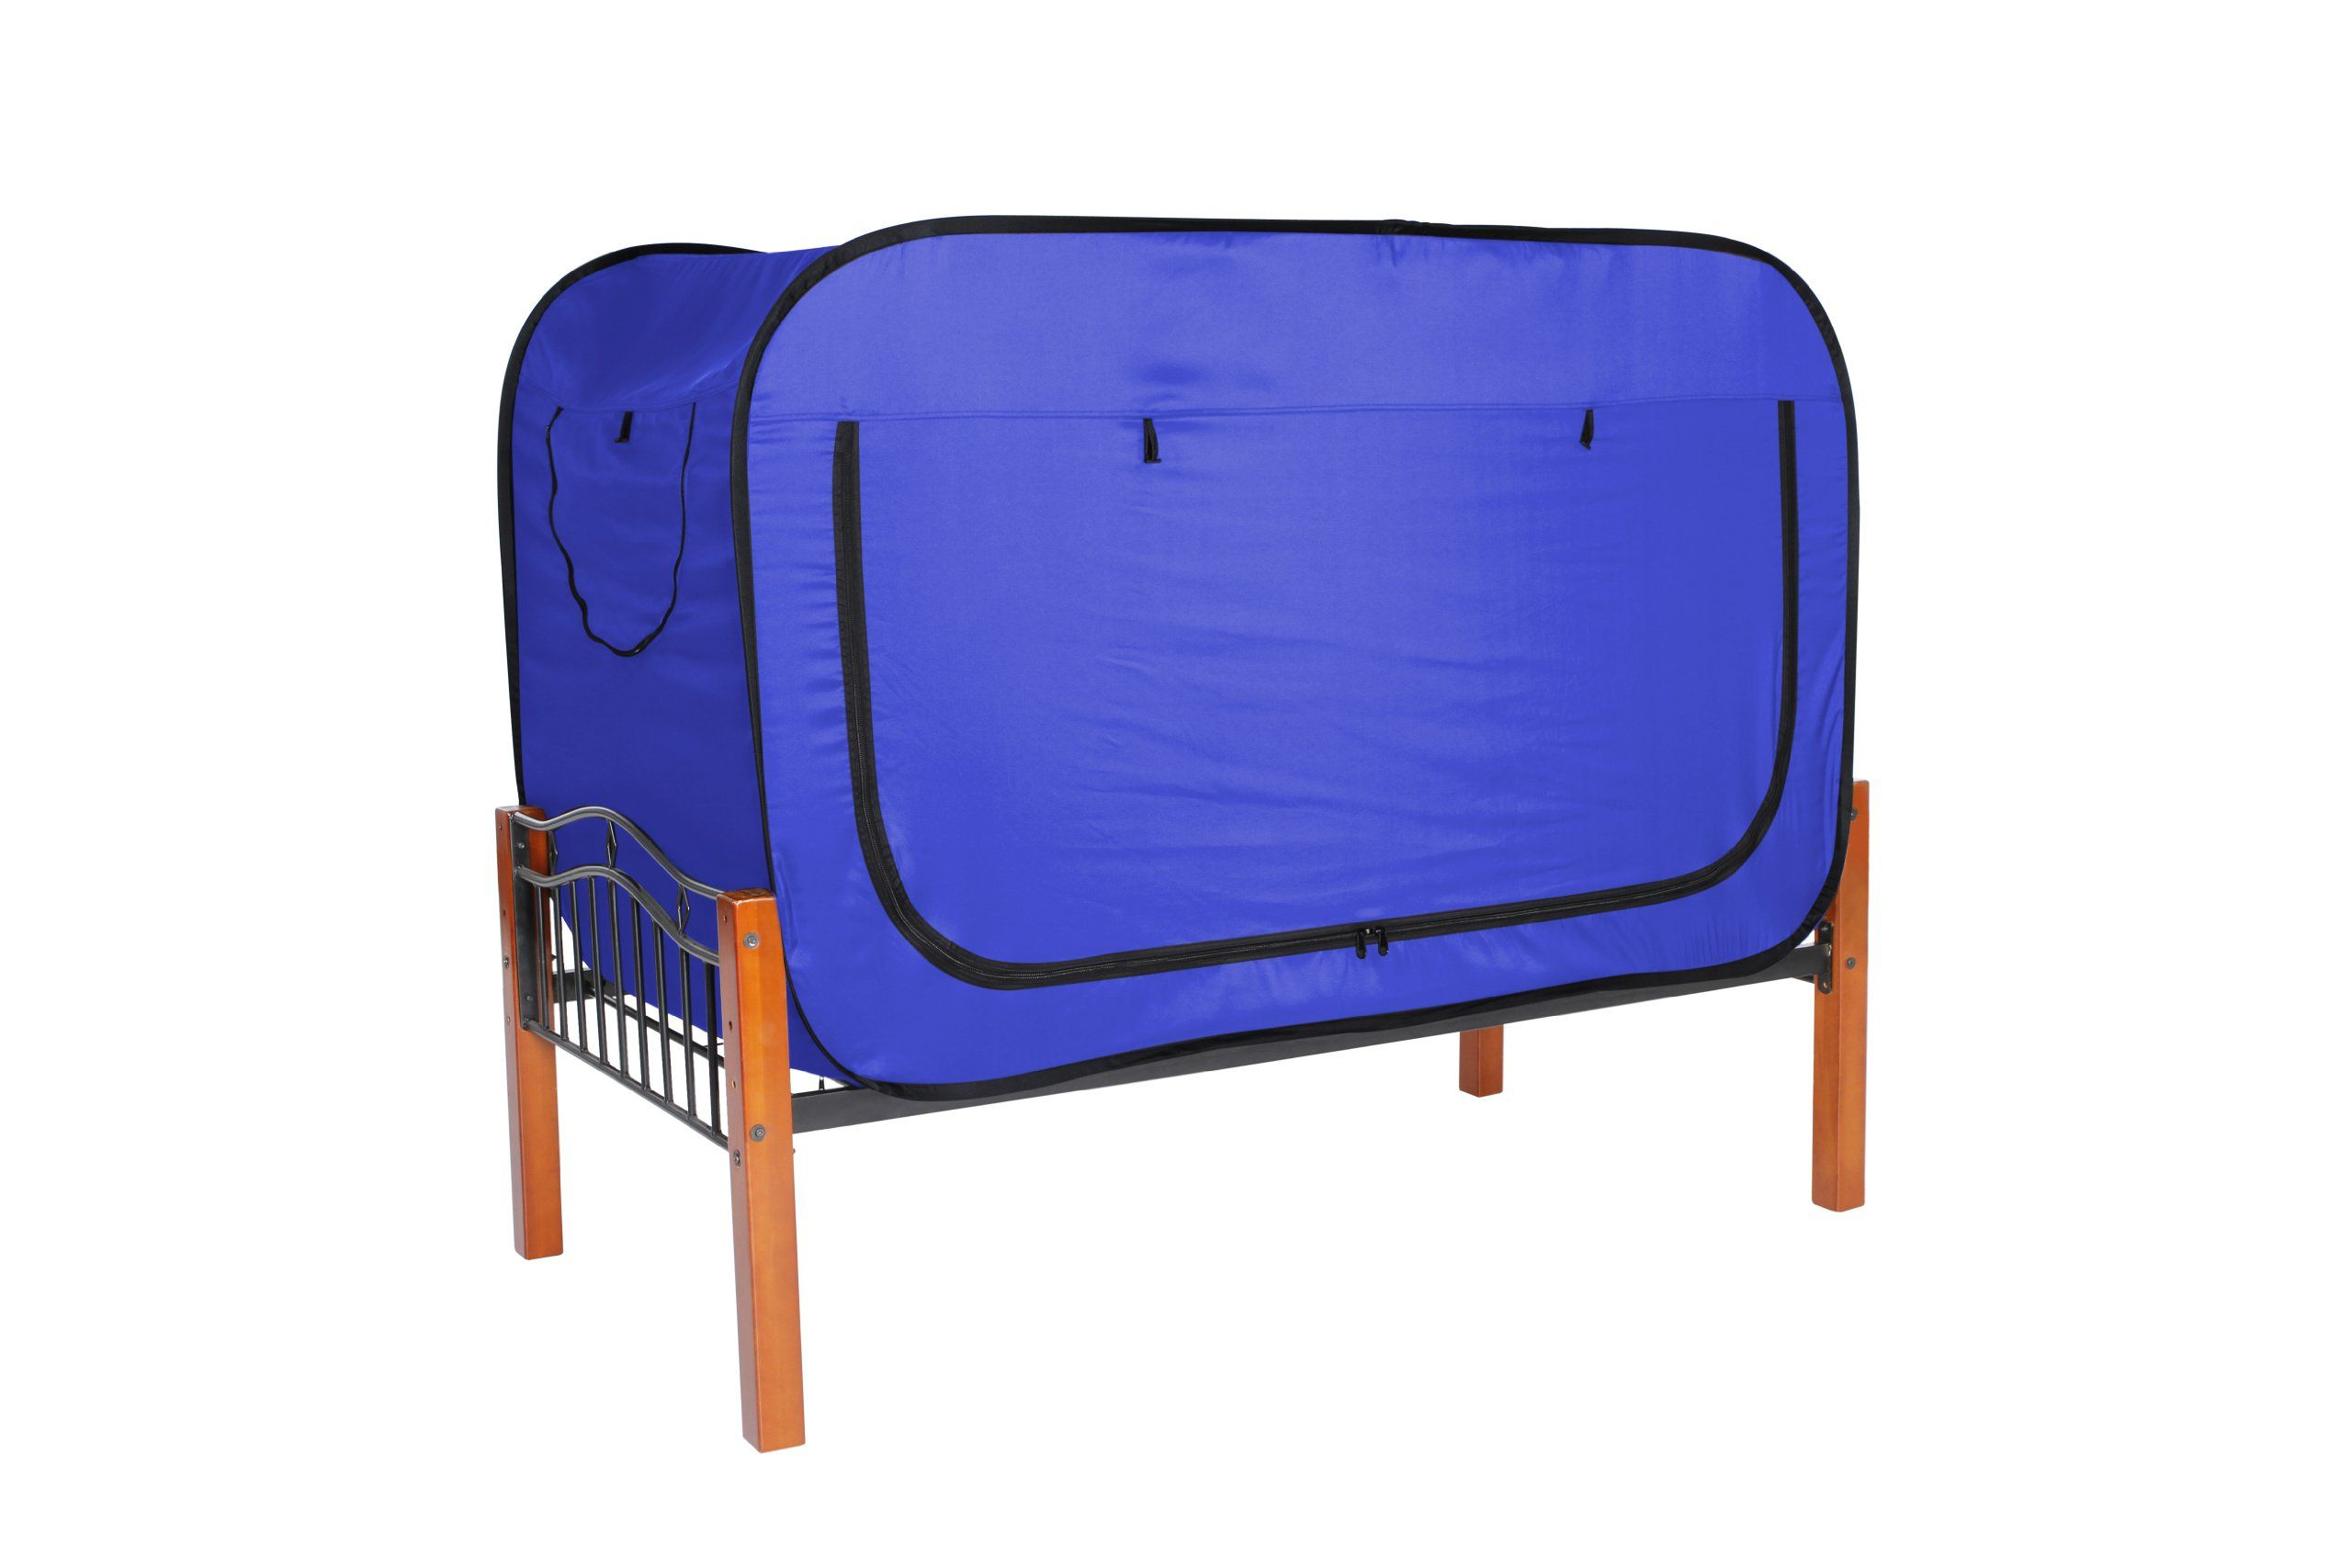 Privacy Pop Bed Tent Furniture & Decor Bed